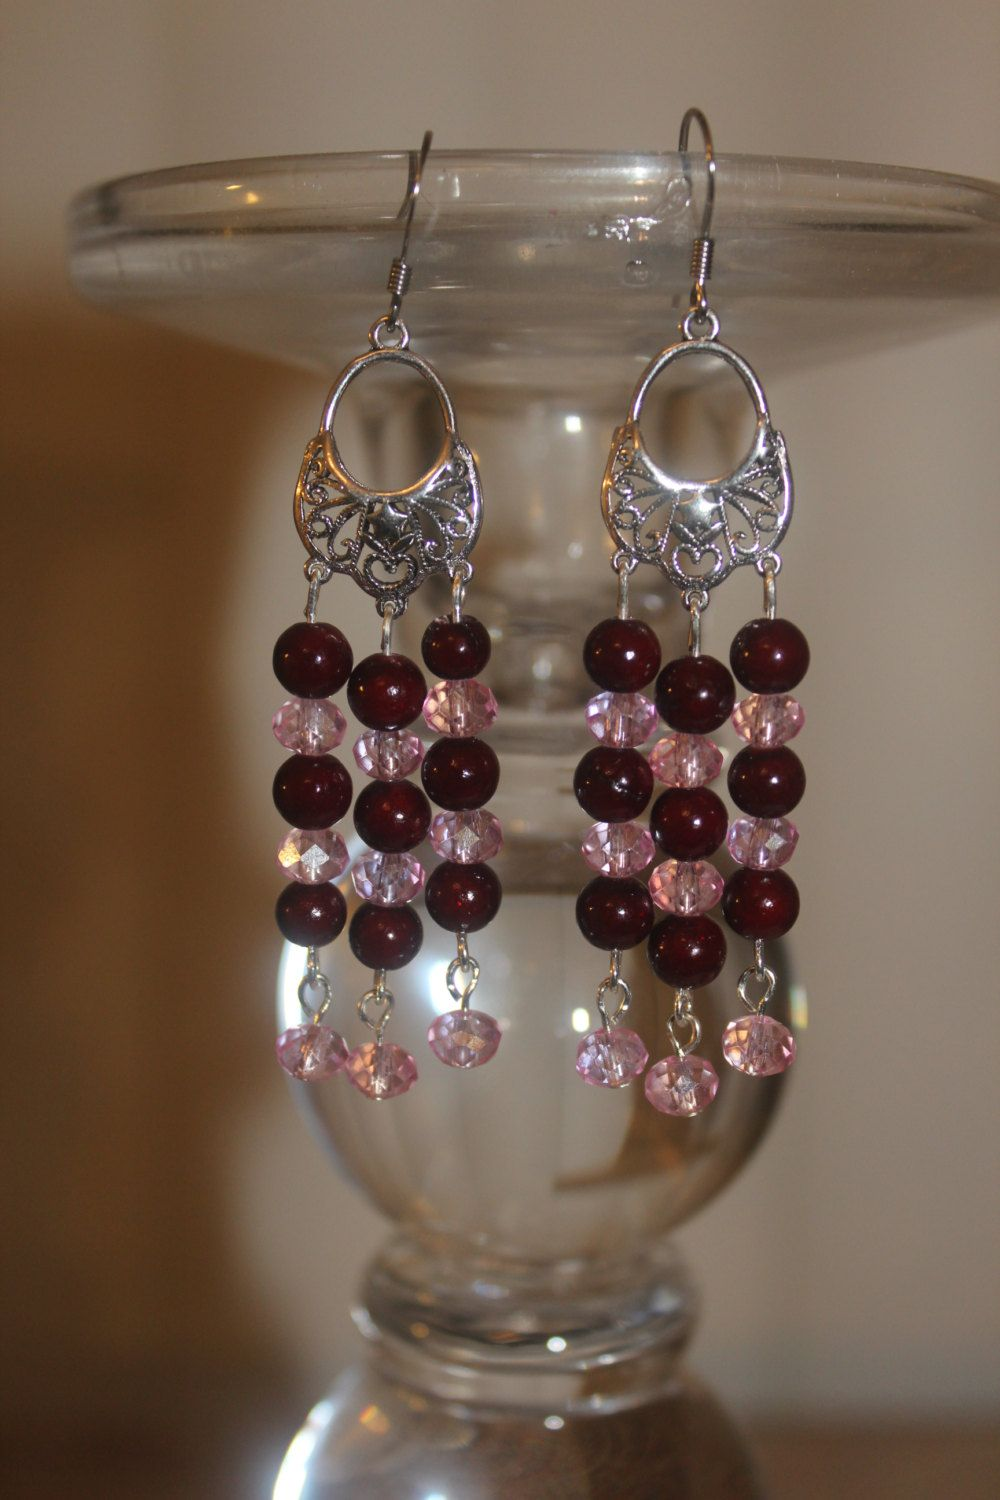 Exotic eastern style chandelier earrings boho gypsy style exotic eastern style chandelier earrings boho gypsy style chandelier silver filigree earrings burgundy and pink chandelier earrings arubaitofo Choice Image